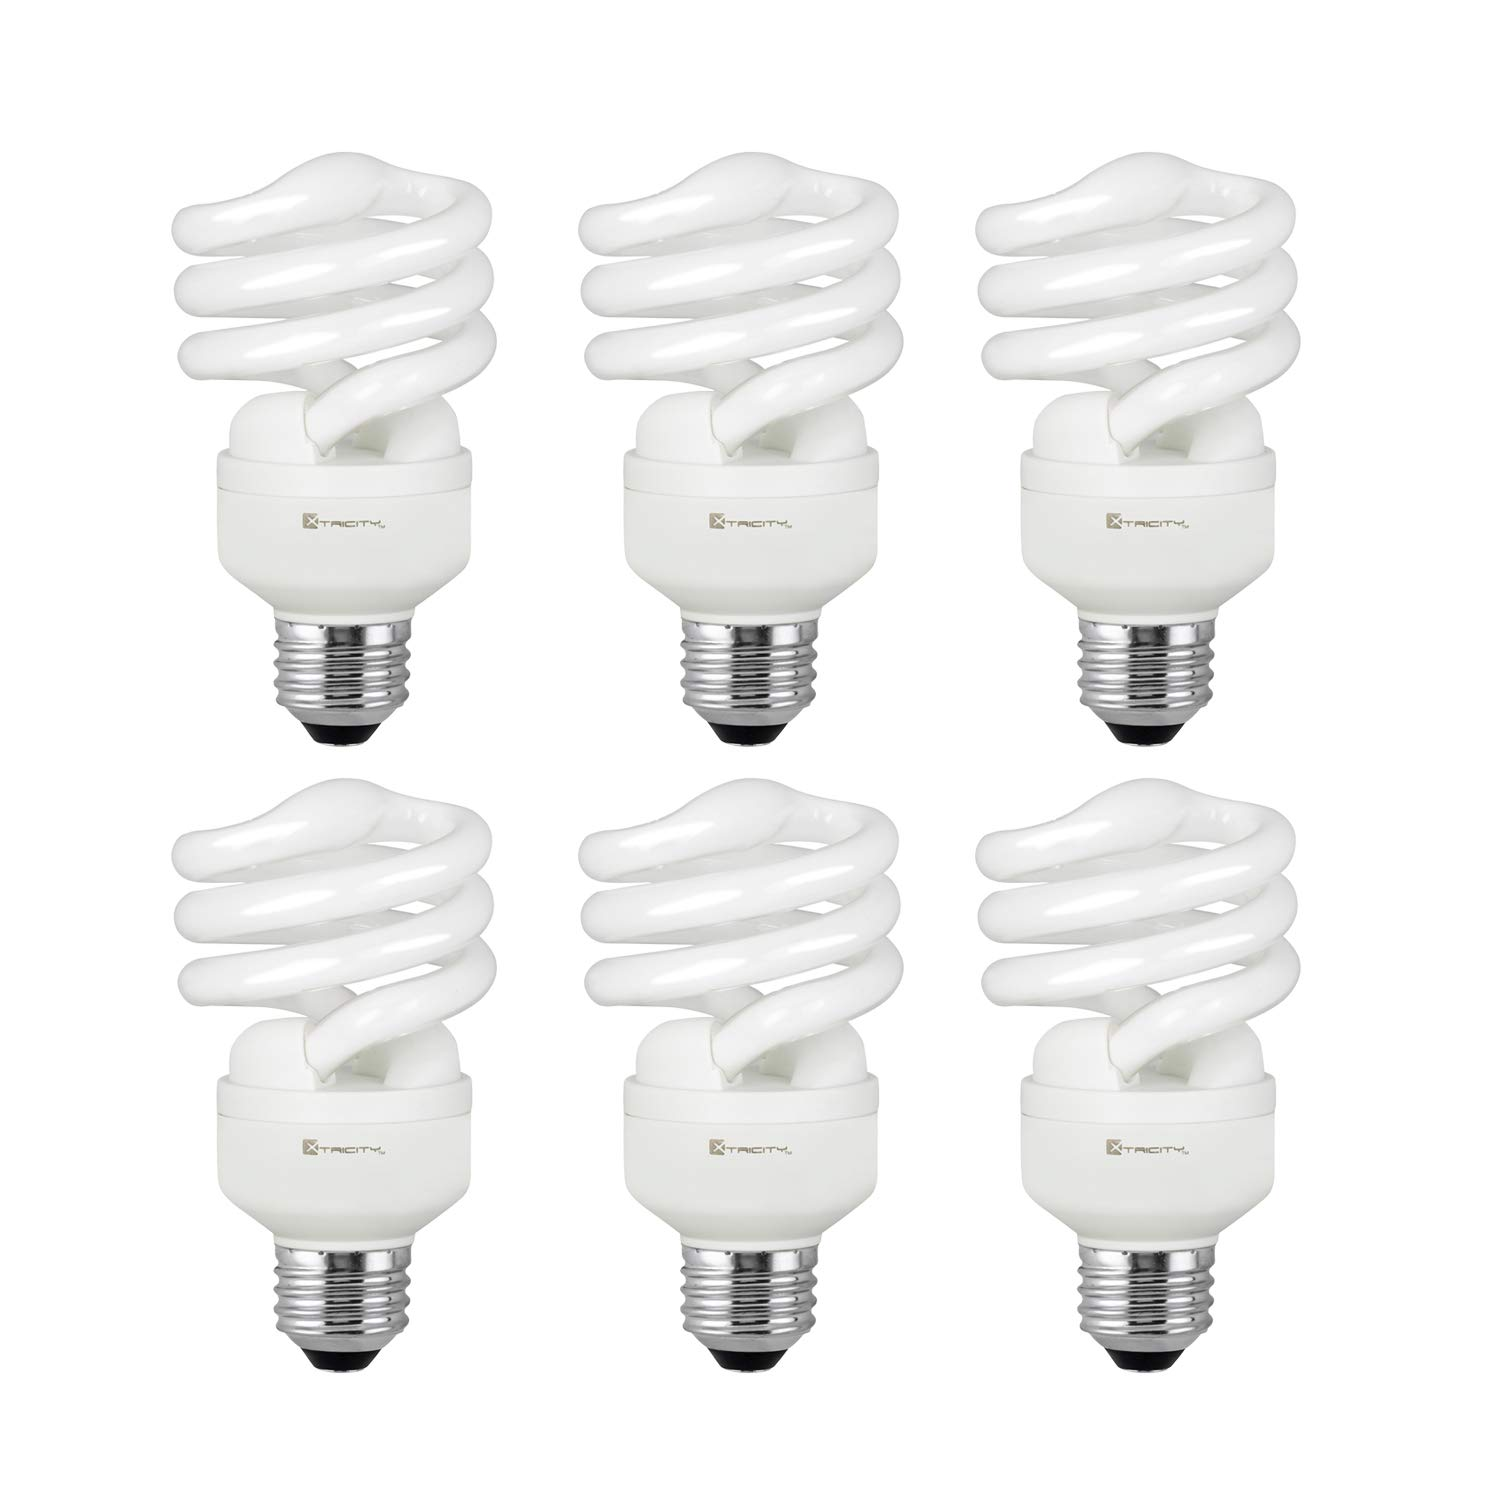 Compact Fluorescent Light Bulb T2 Spiral CFL, 5000k Daylight, 13W (60 Watt Equivalent), 900 Lumens, E26 Medium Base, 120V, UL Listed (Pack of 6)